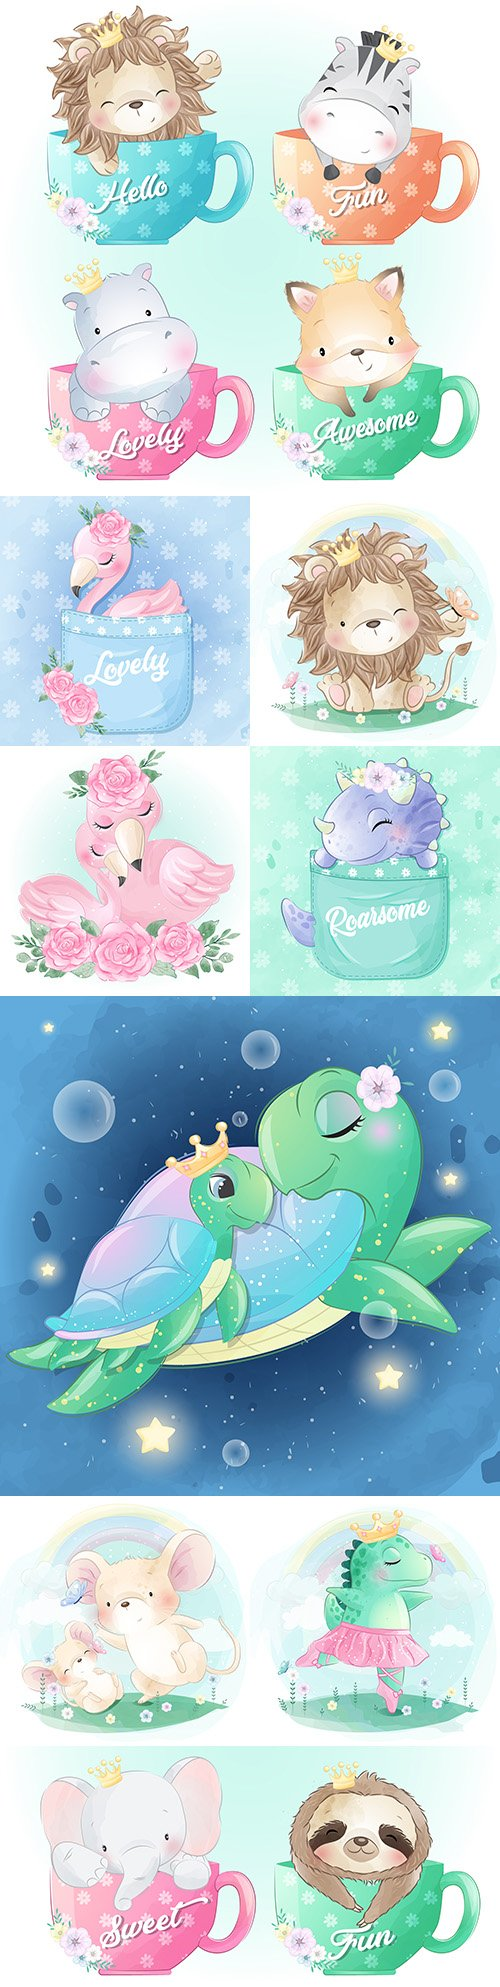 Funny animals cartoon watercolor with flowers illustrations 36